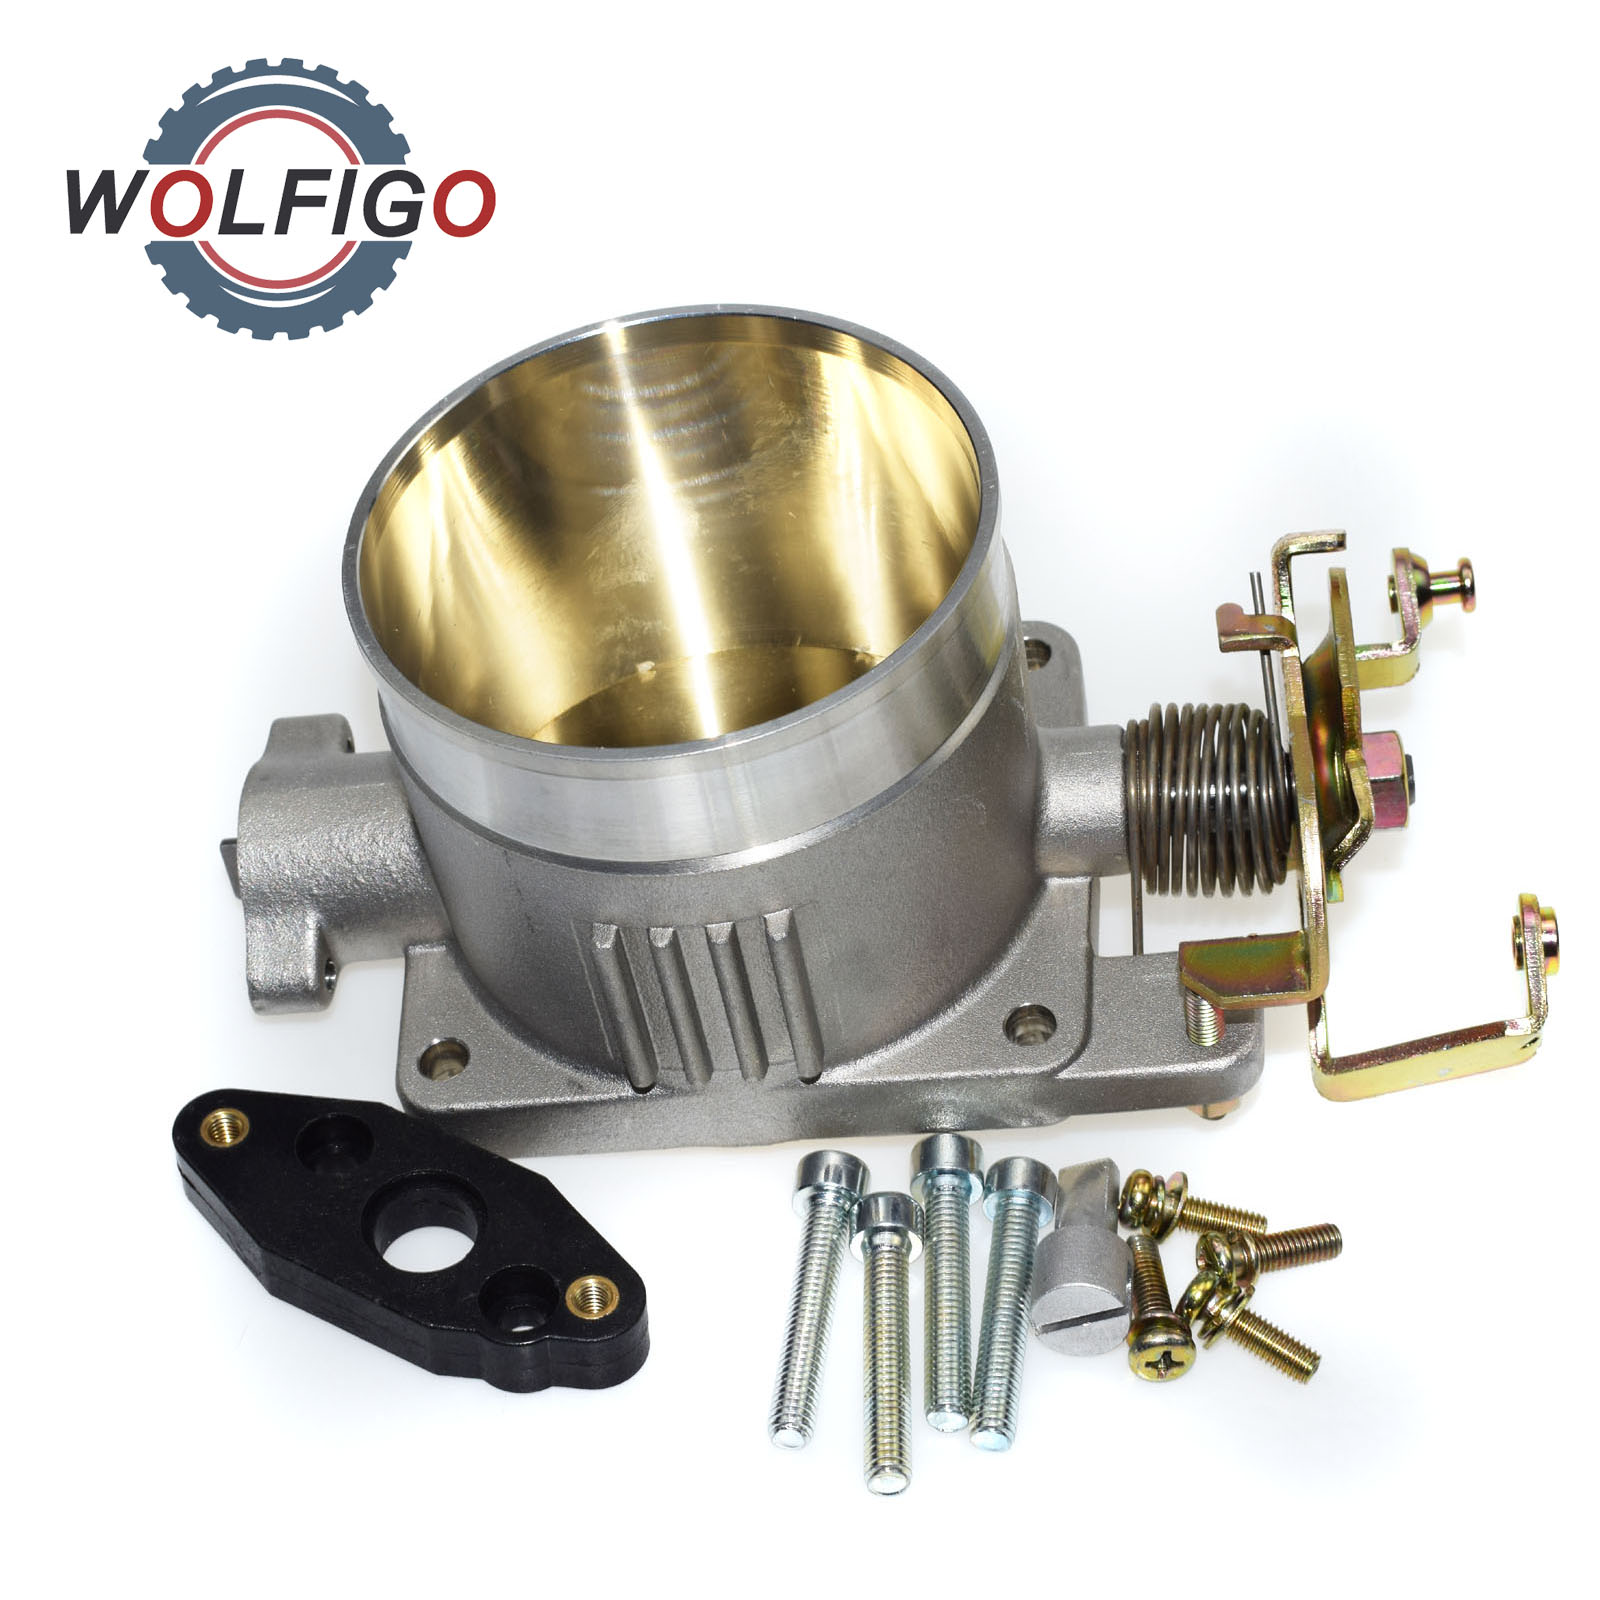 WOLFIGO New Intake Throttle Body Direct Bolt WITH for MUSTANG 4 6L 2V 75MM